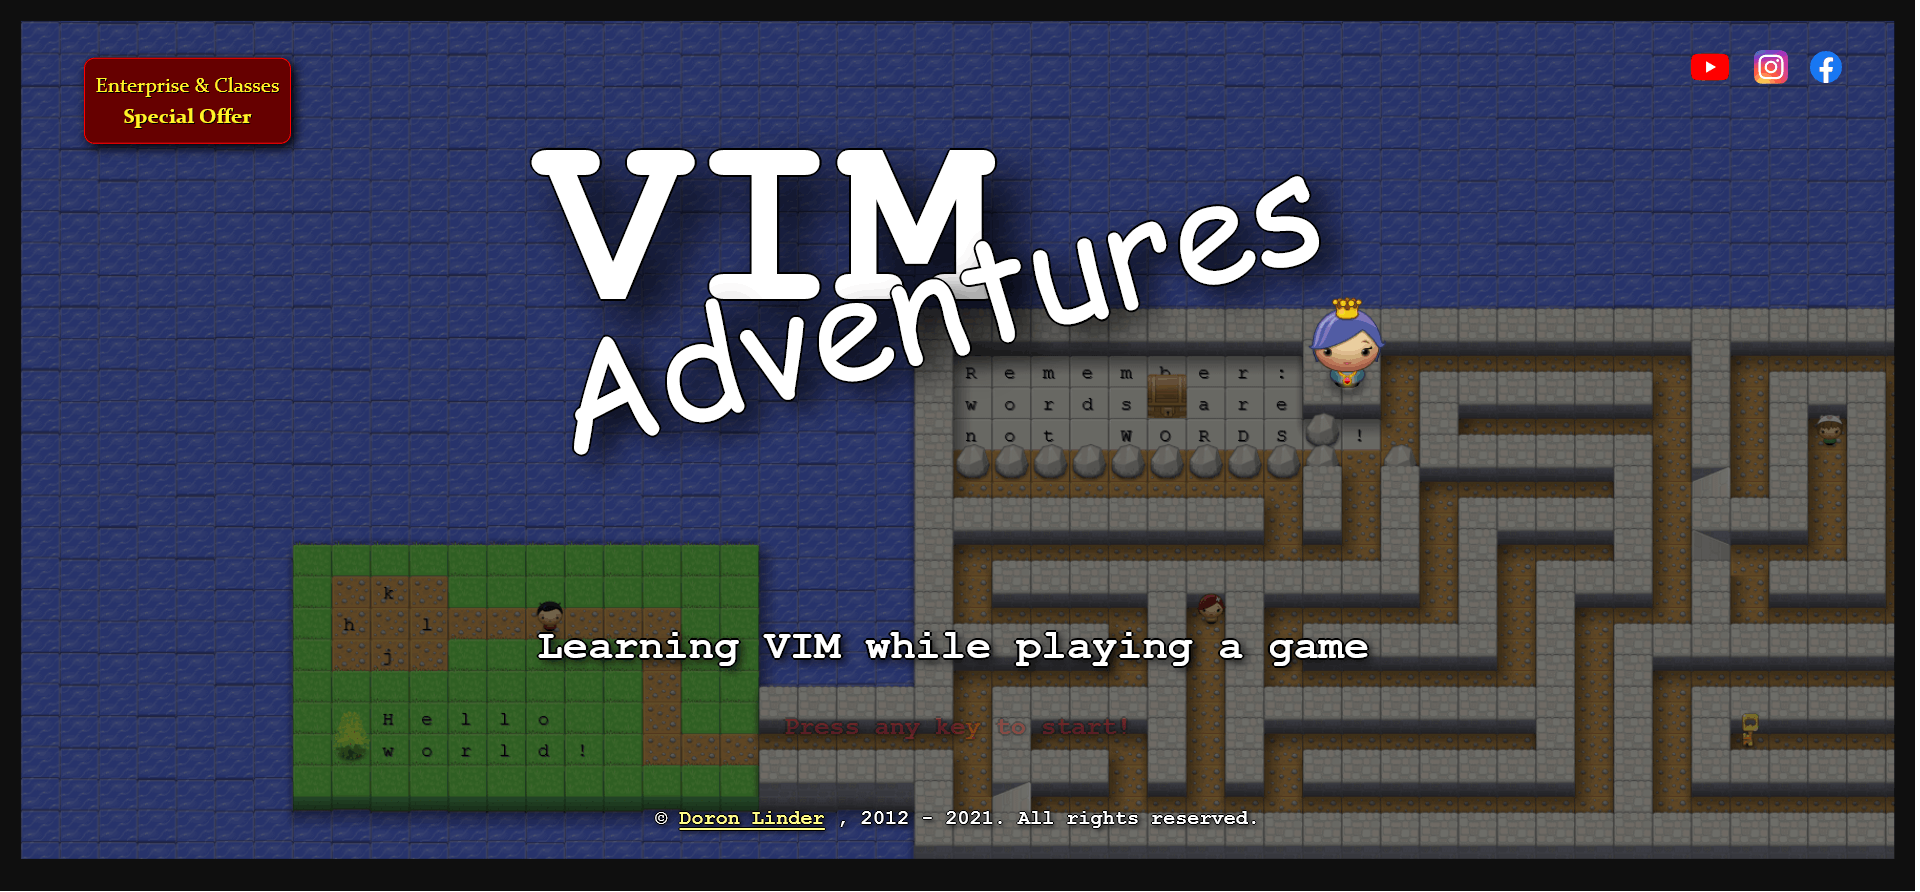 Screenshot 2021-05-07 at 11-35-10 Learn VIM while playing a game - VIM Adventures.png